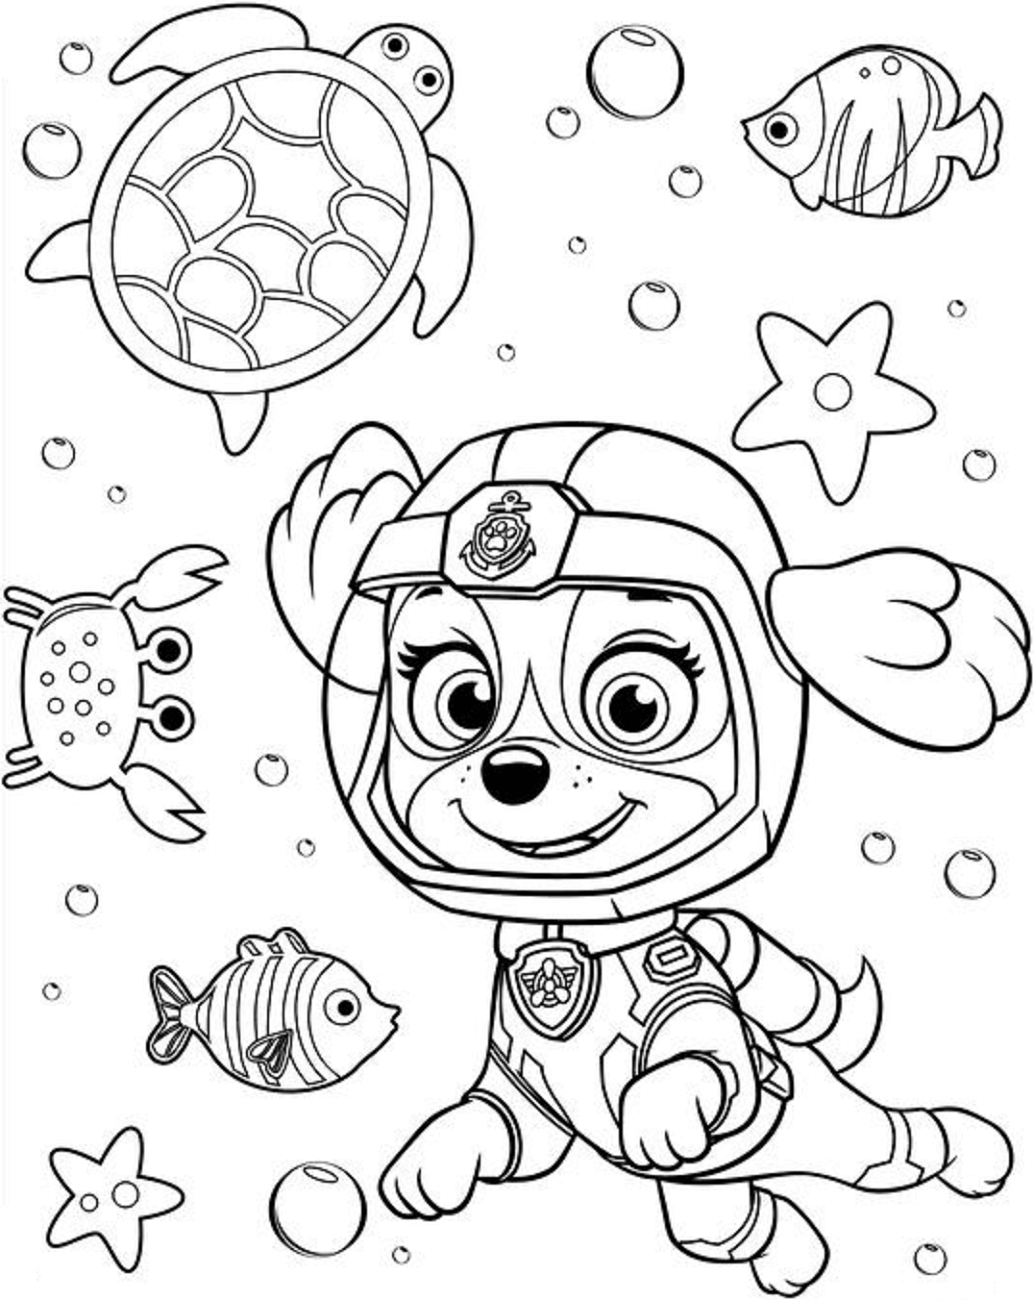 everest coloring page mount everest coloring download mount everest coloring everest page coloring